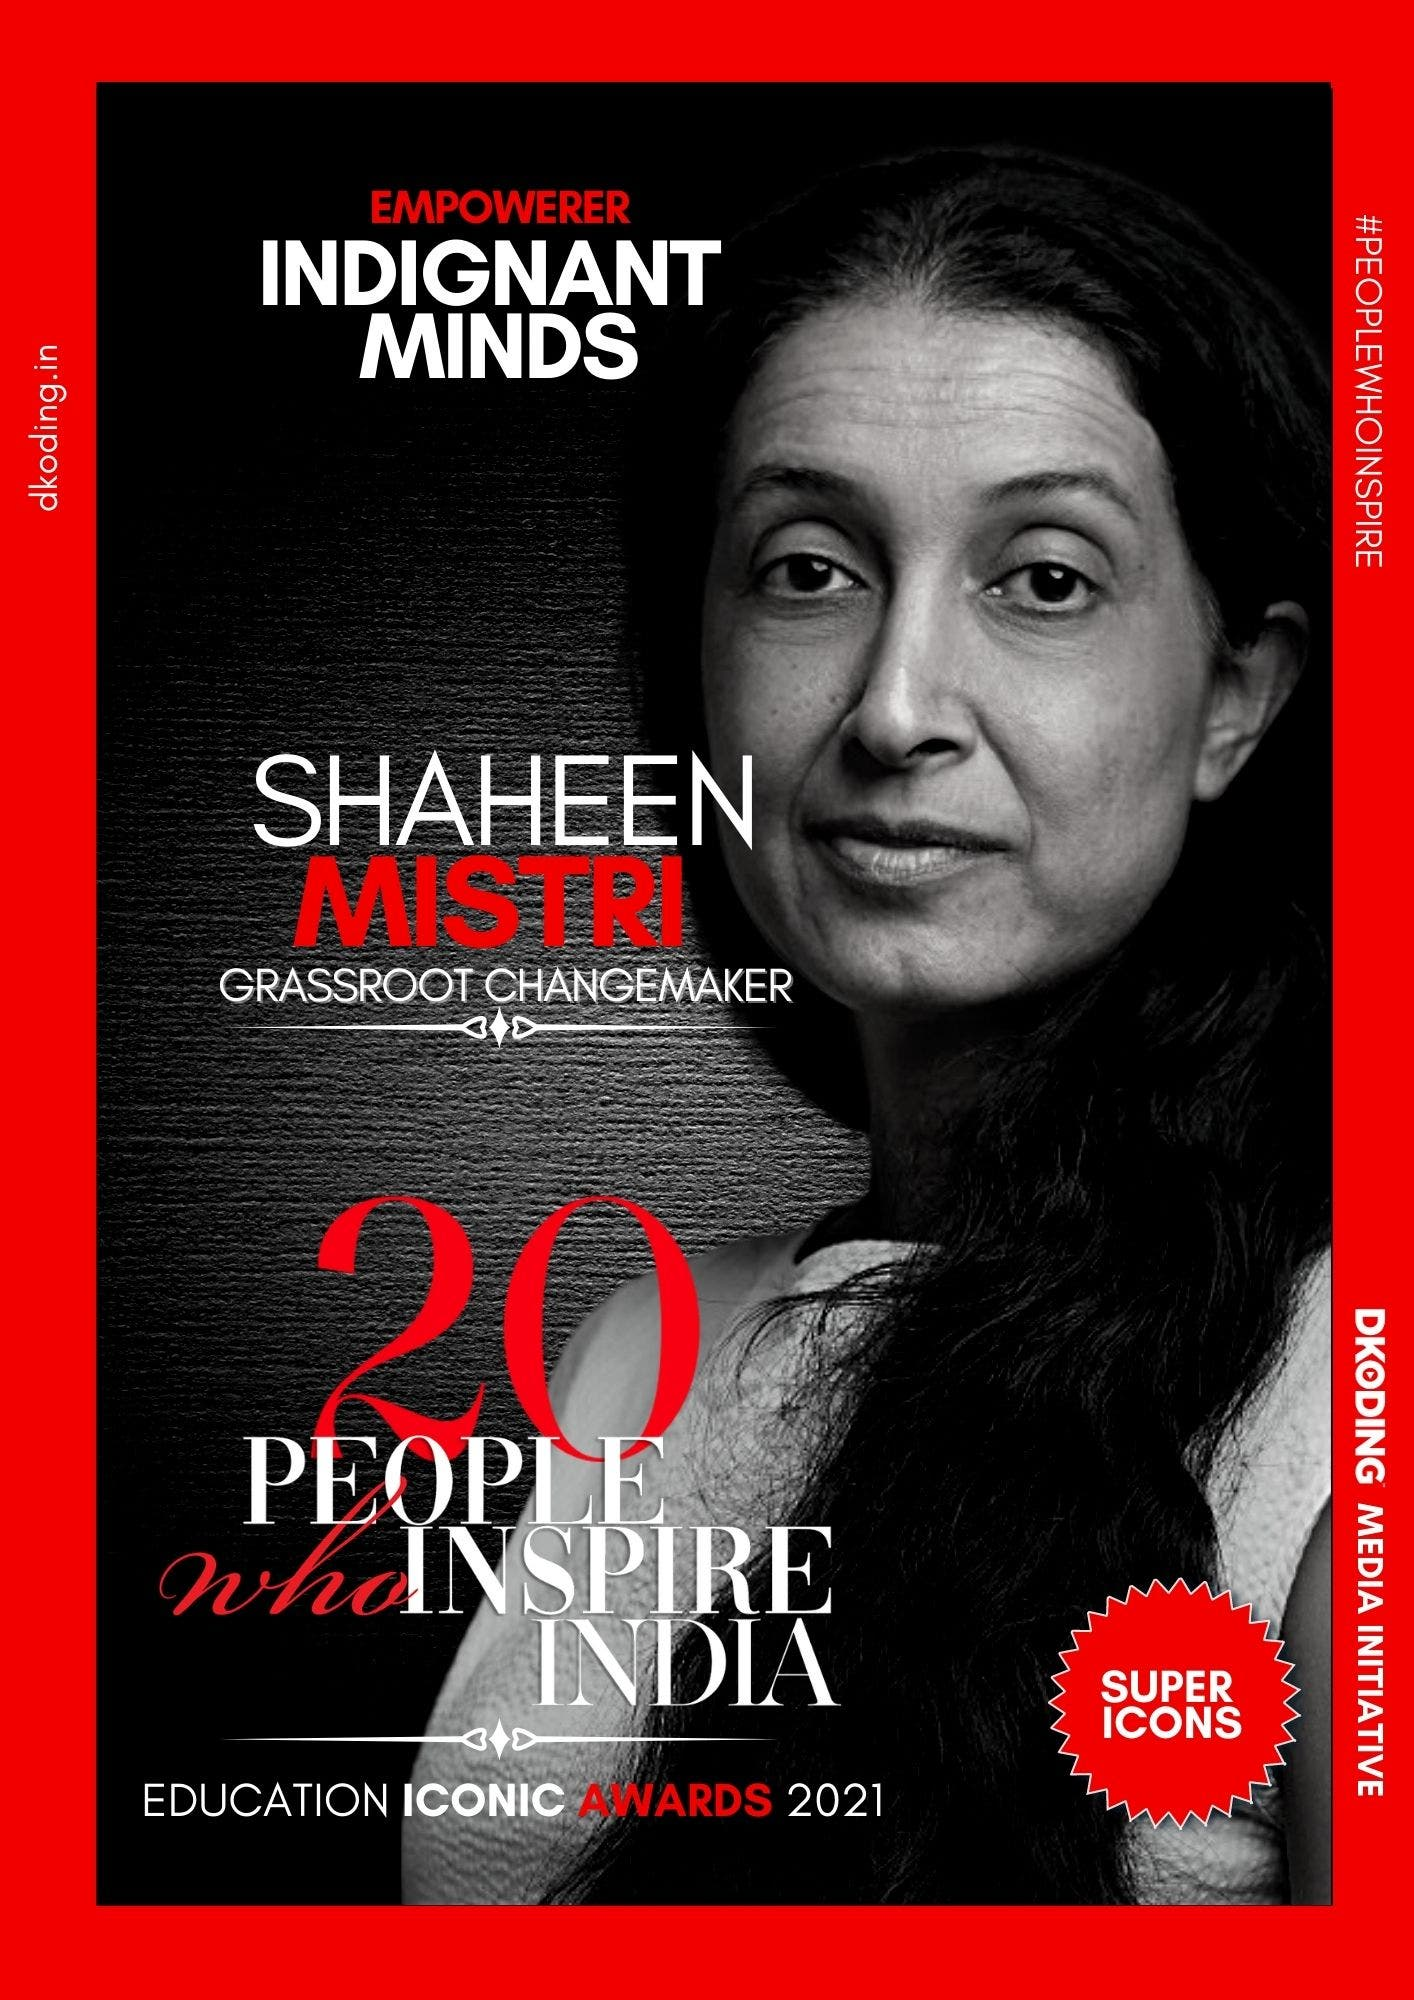 Shaheen Mistri wins People Who Inspire India PWI Education Iconic Award 2021